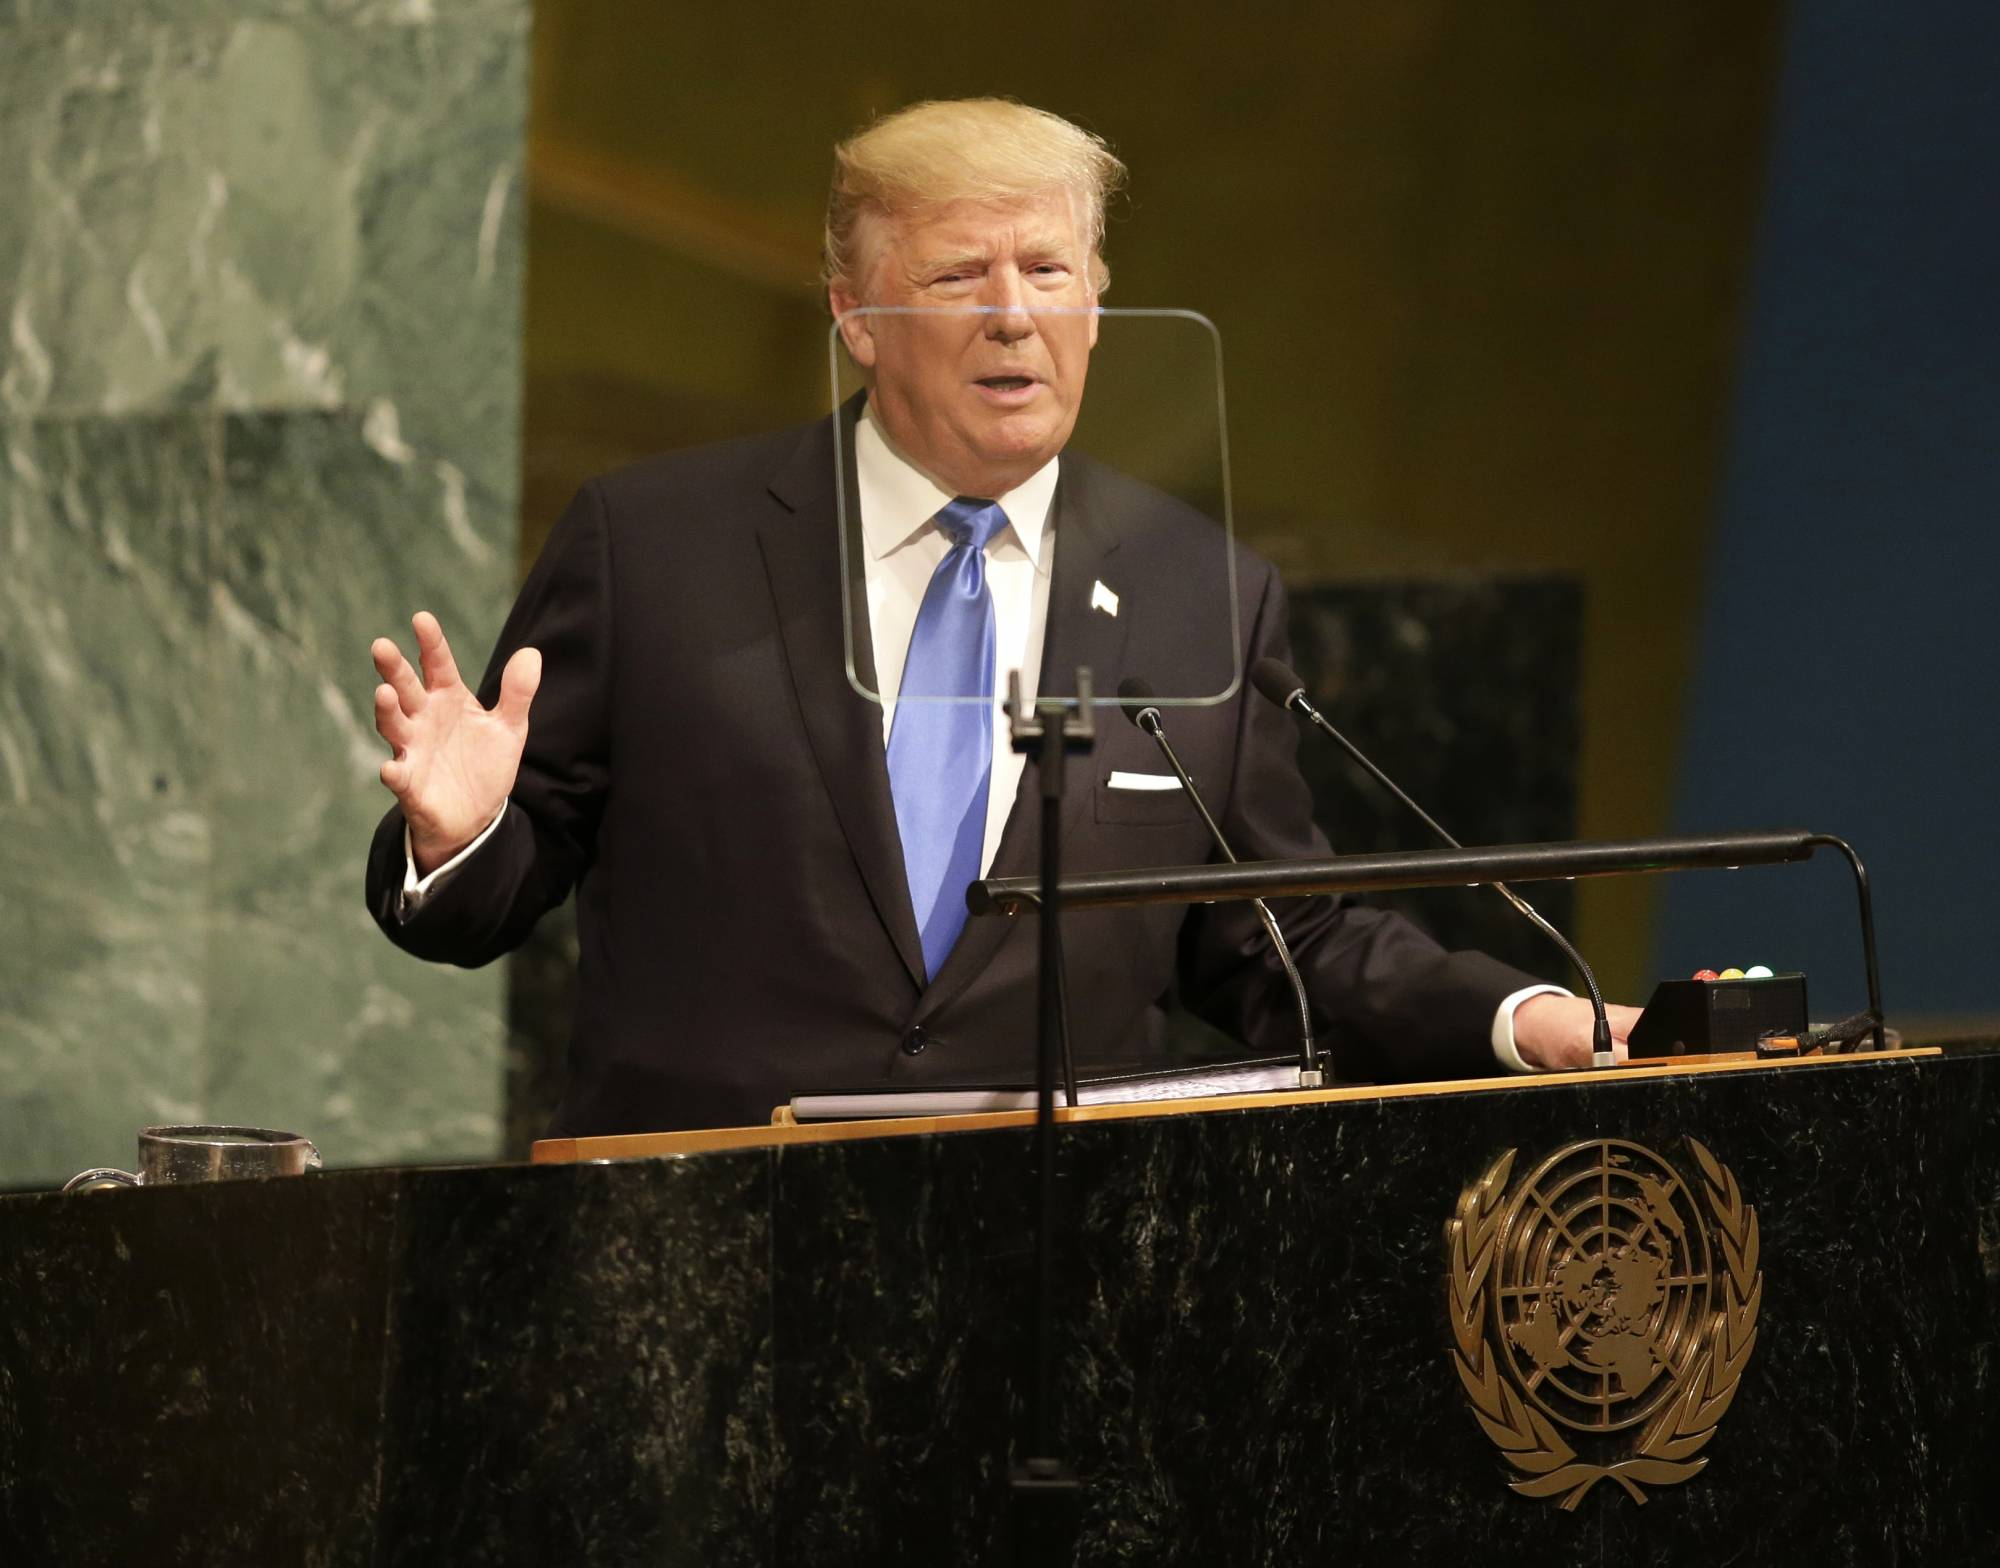 Created At 2017 09 20 1216 Pop Filter Layer Ganda Mikrofon Bop United Nations Ap President Donald Trump Has Vowed To Totally Destroy North Korea If The U S Is Forced Defend Itself Or Its Allies Against